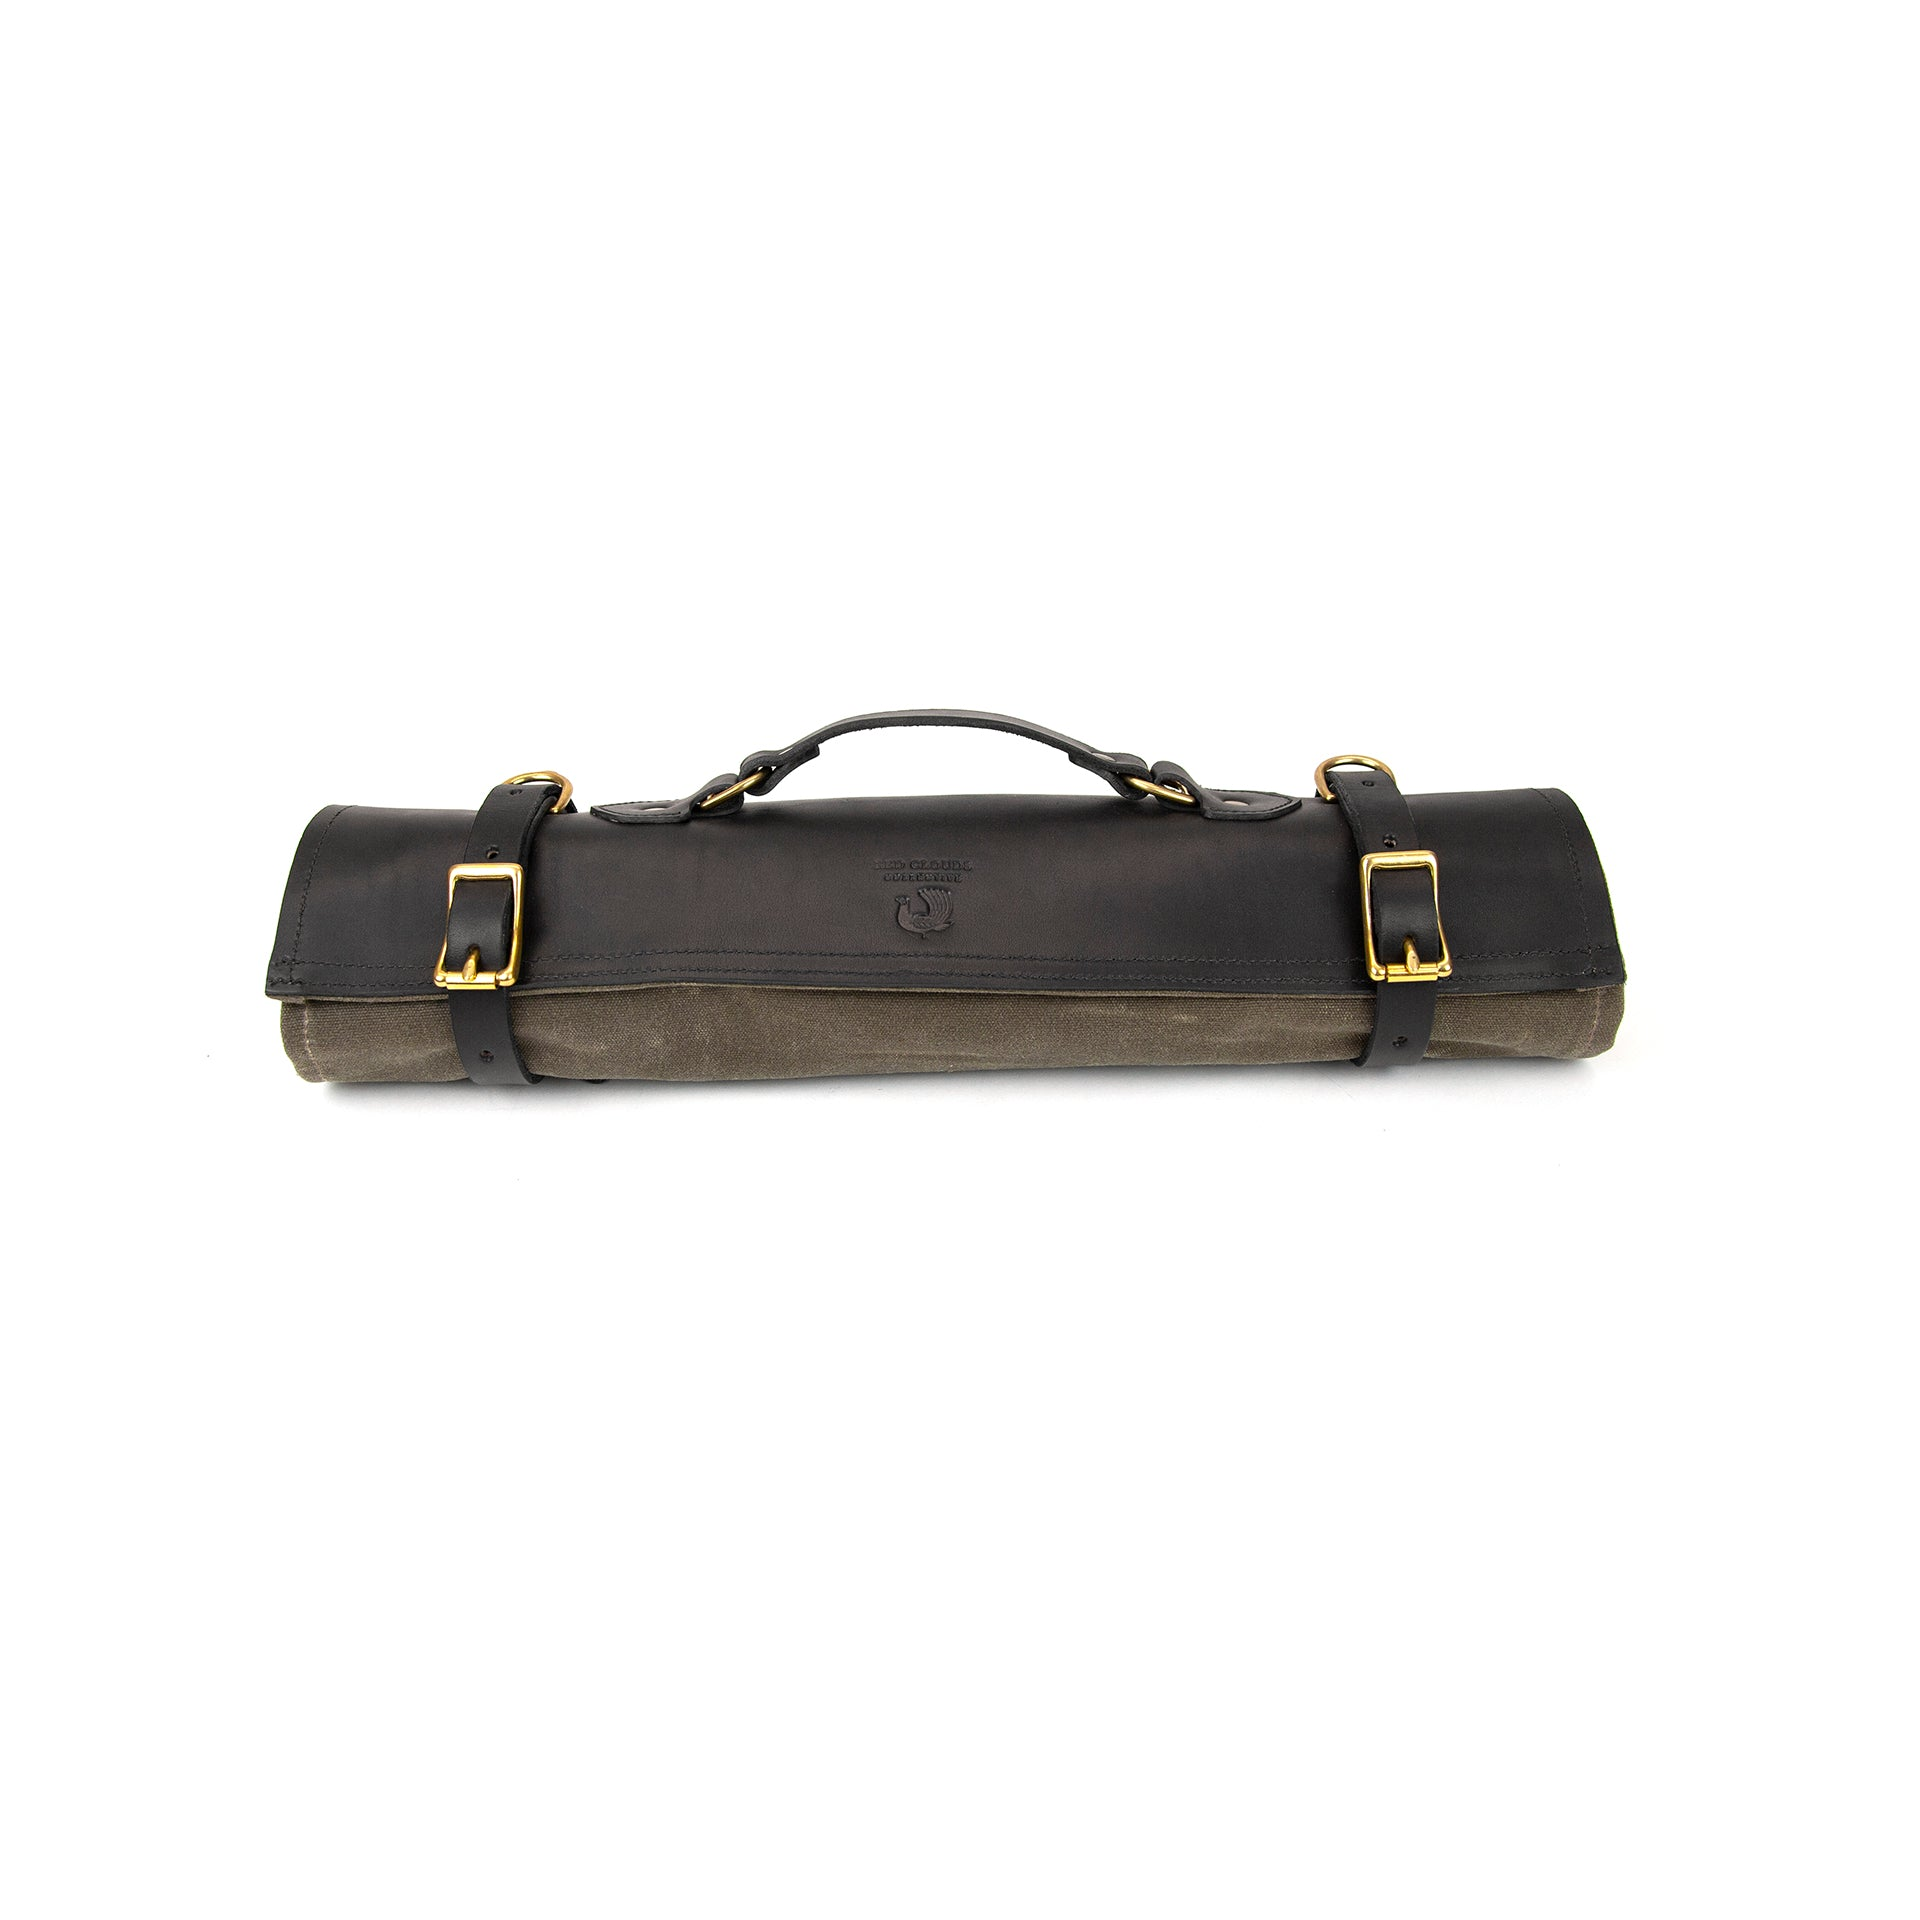 Chef Knife Roll - Havana / Black Leather